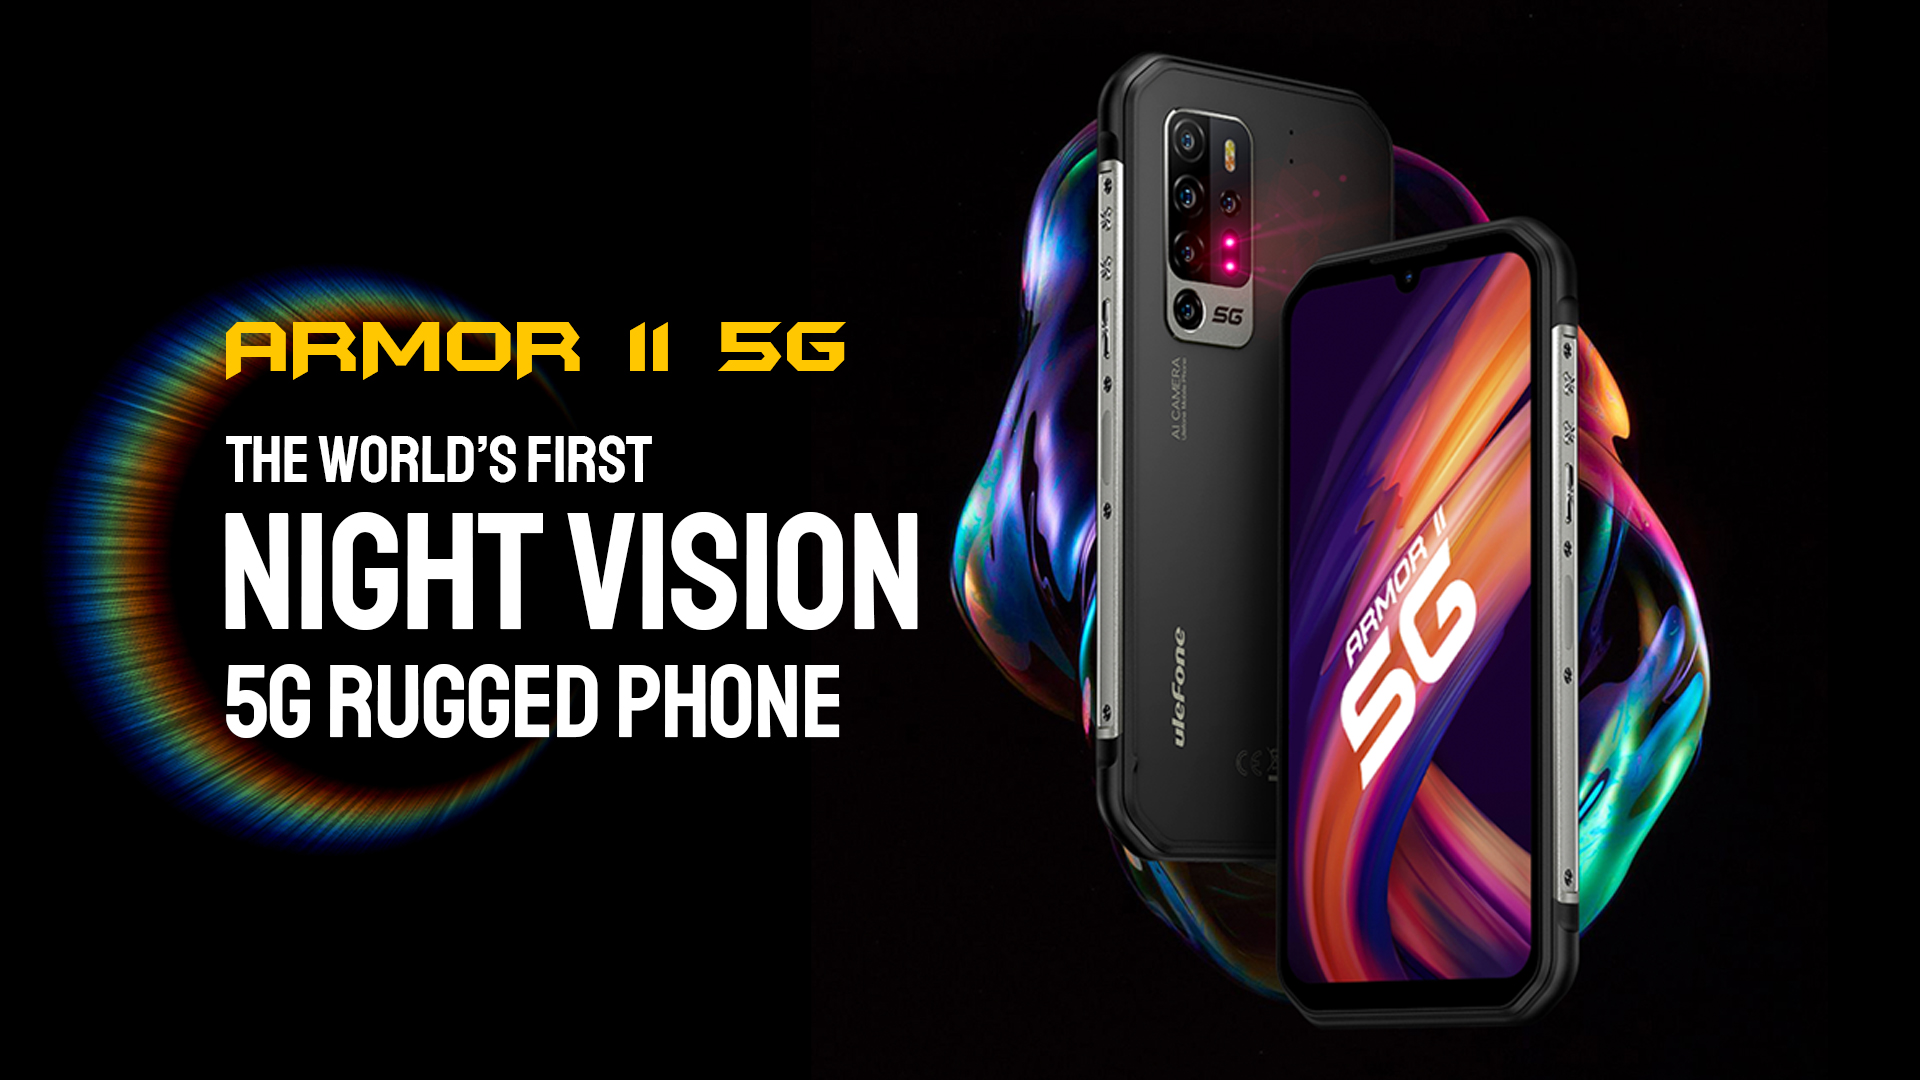 The World's First Night Vision 5G Rugged Phone - Ulefone Armor 11 5G Finally Launched